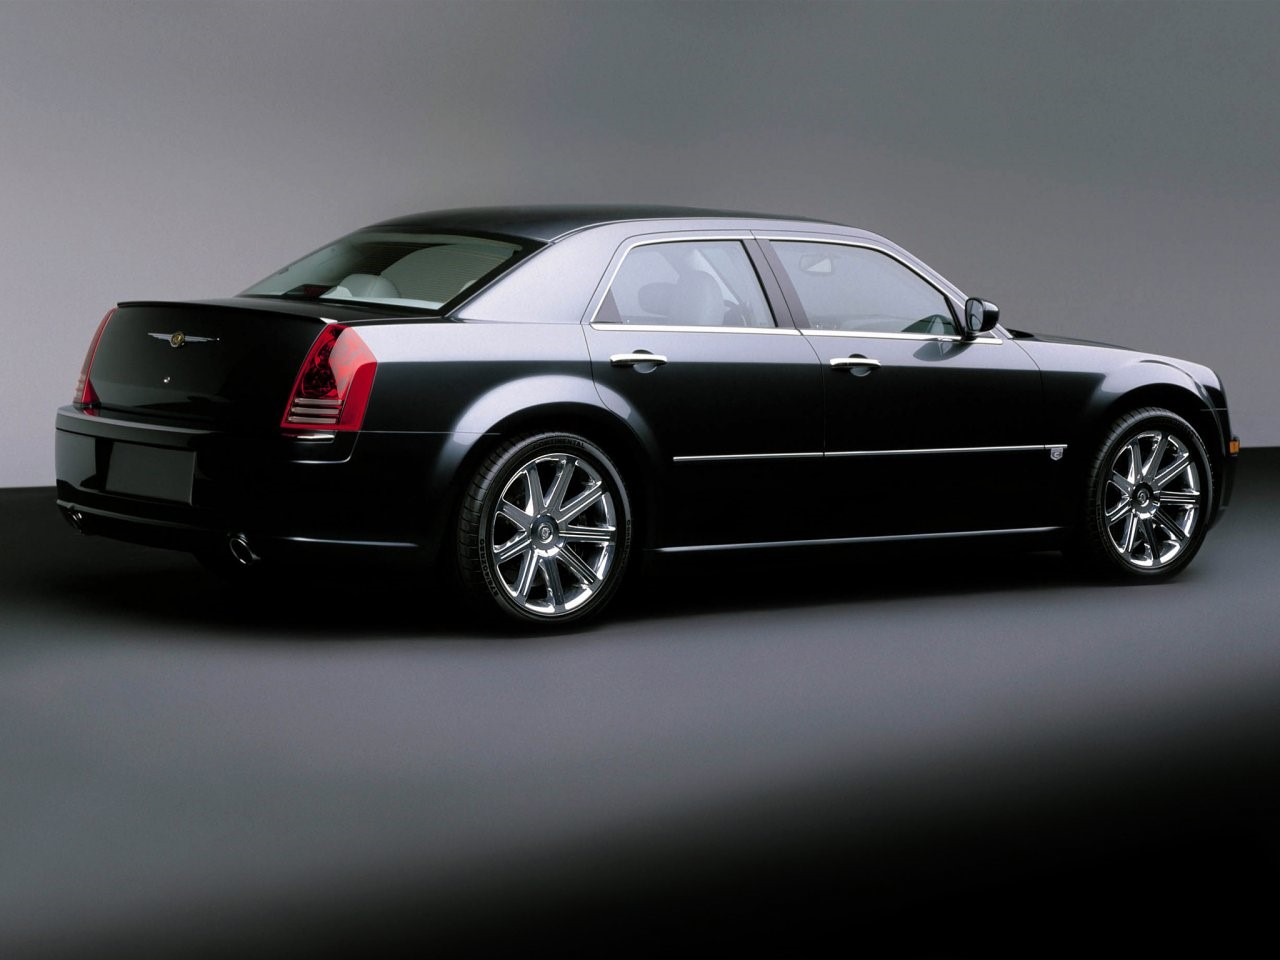 2003 Chrysler 300C concept 7